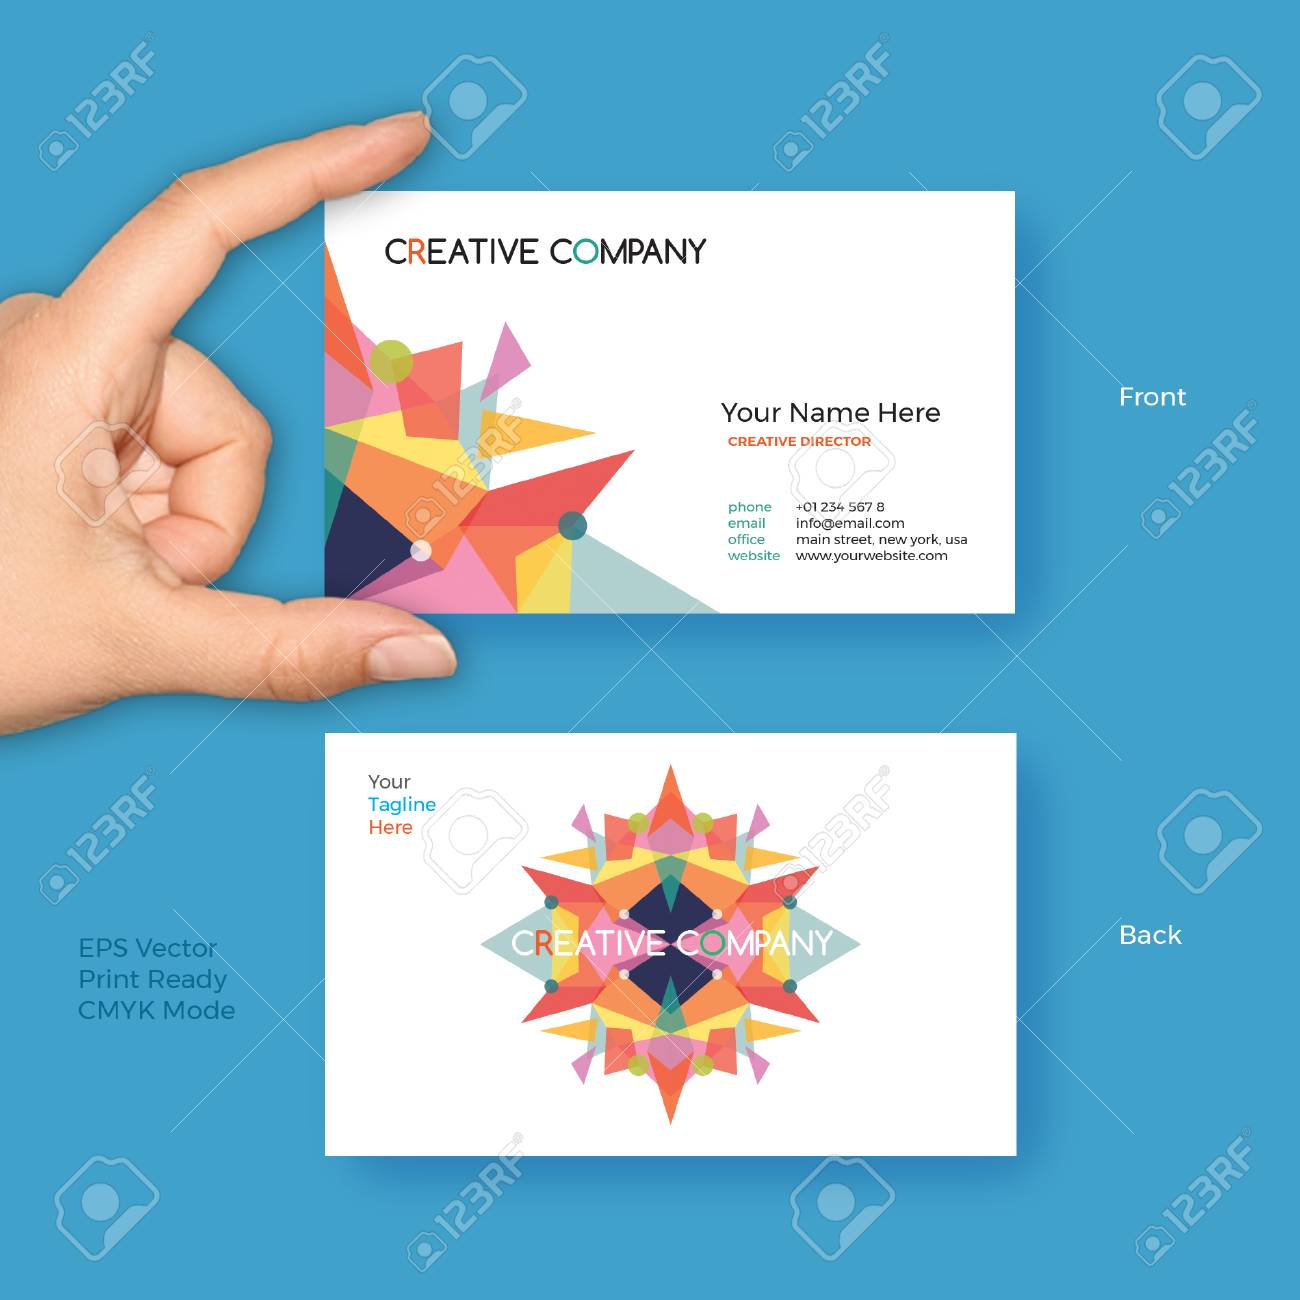 Creative Business Card Vector Template For Creative Startup ...